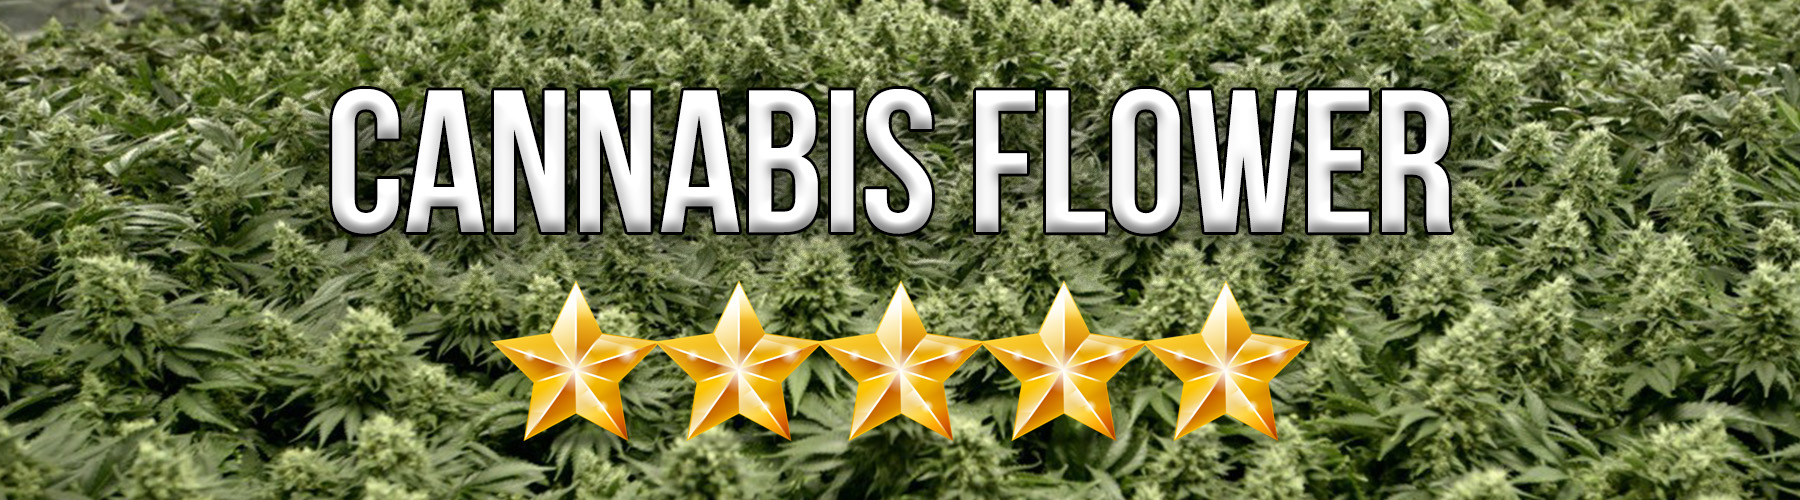 cannabis flower reviews by elev8 presents